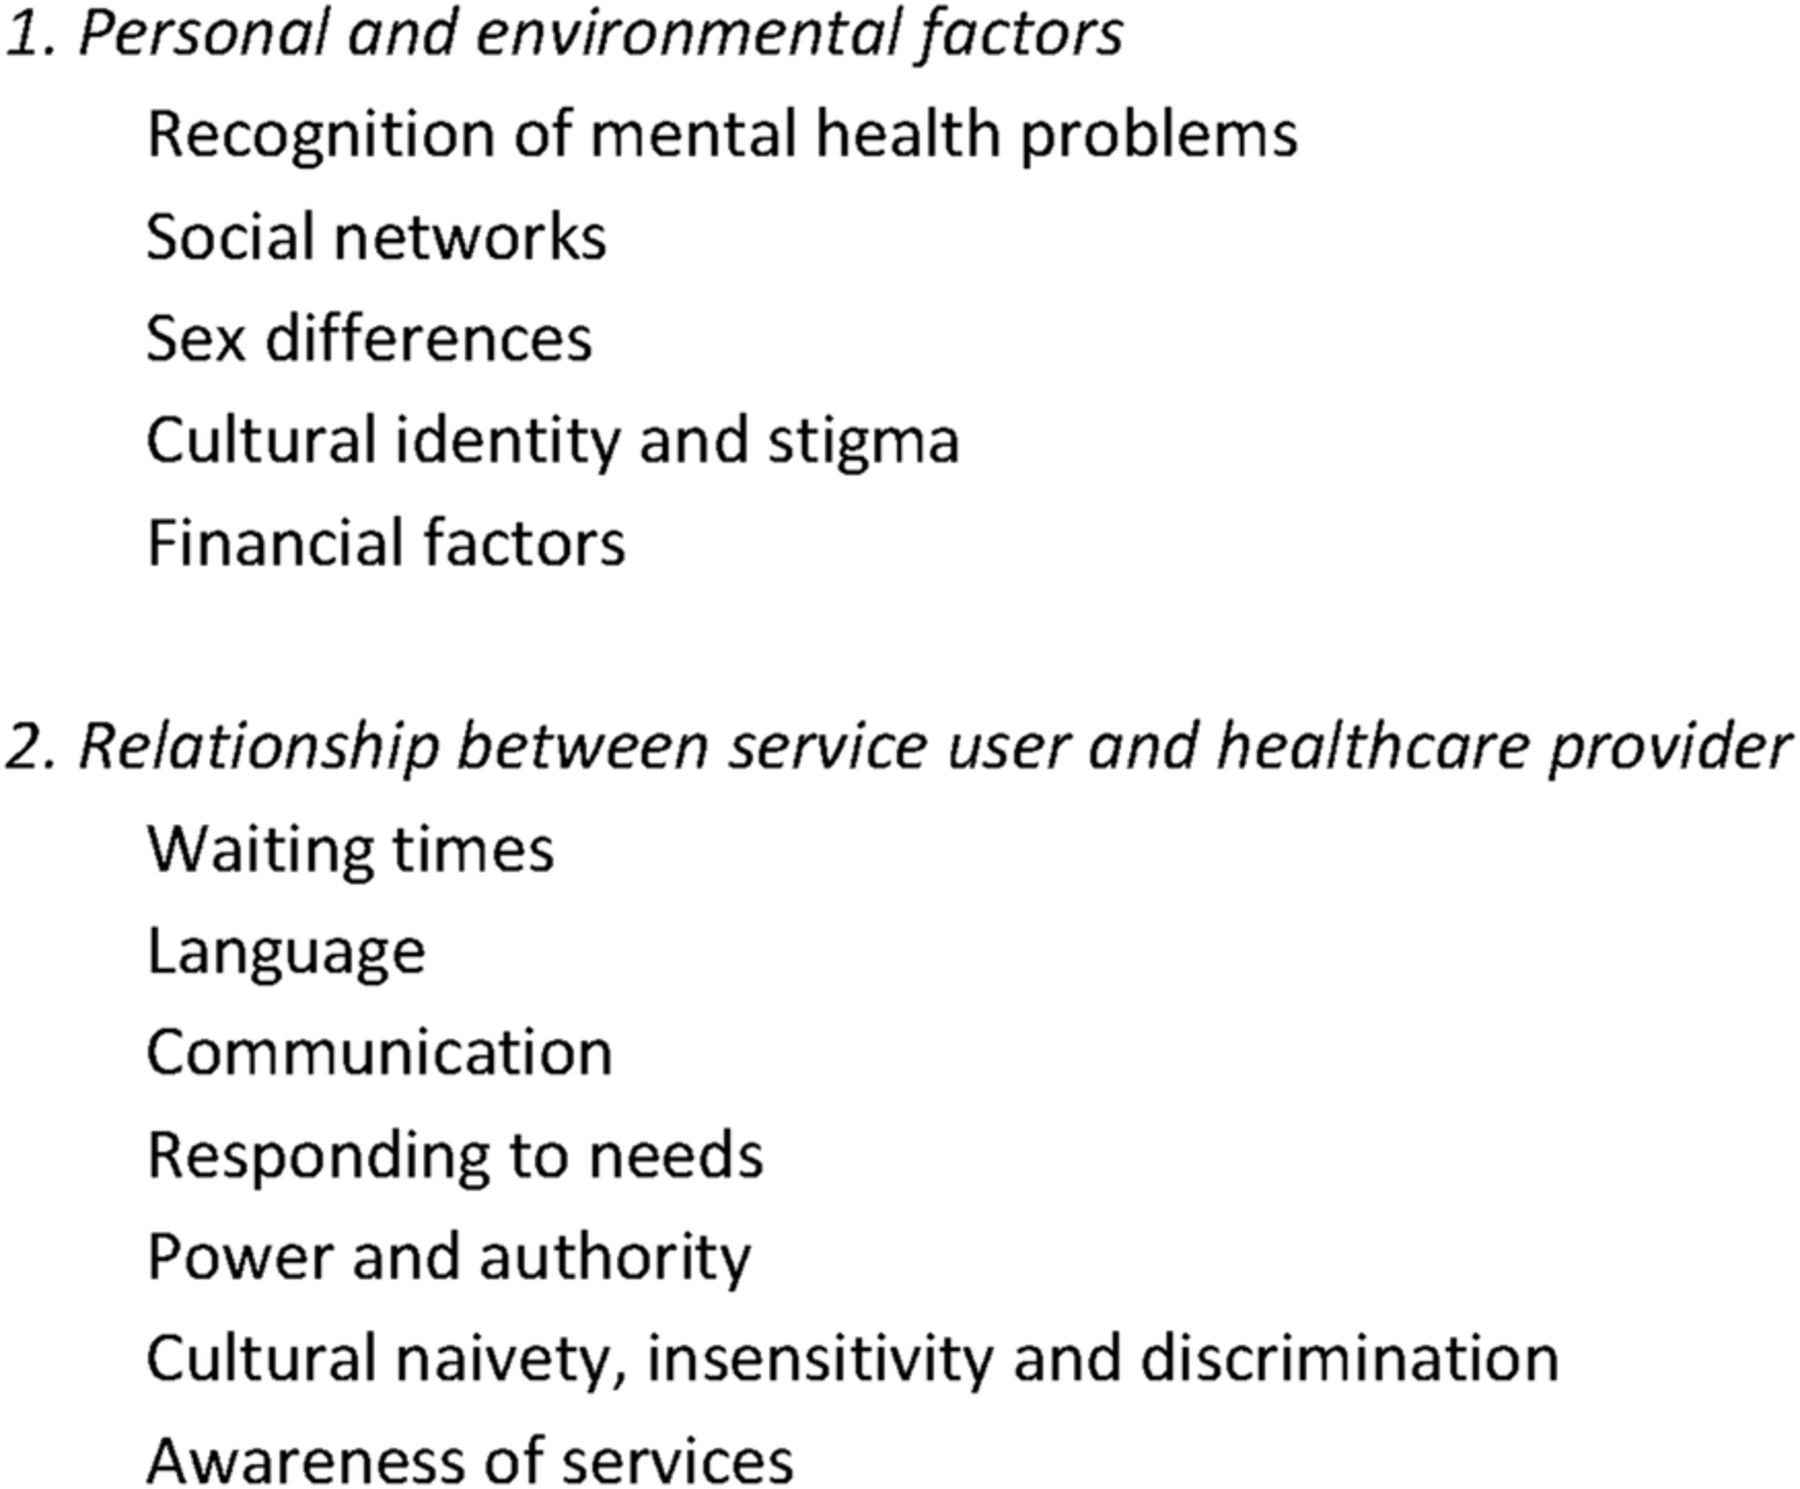 Perceived barriers to accessing mental health services among black